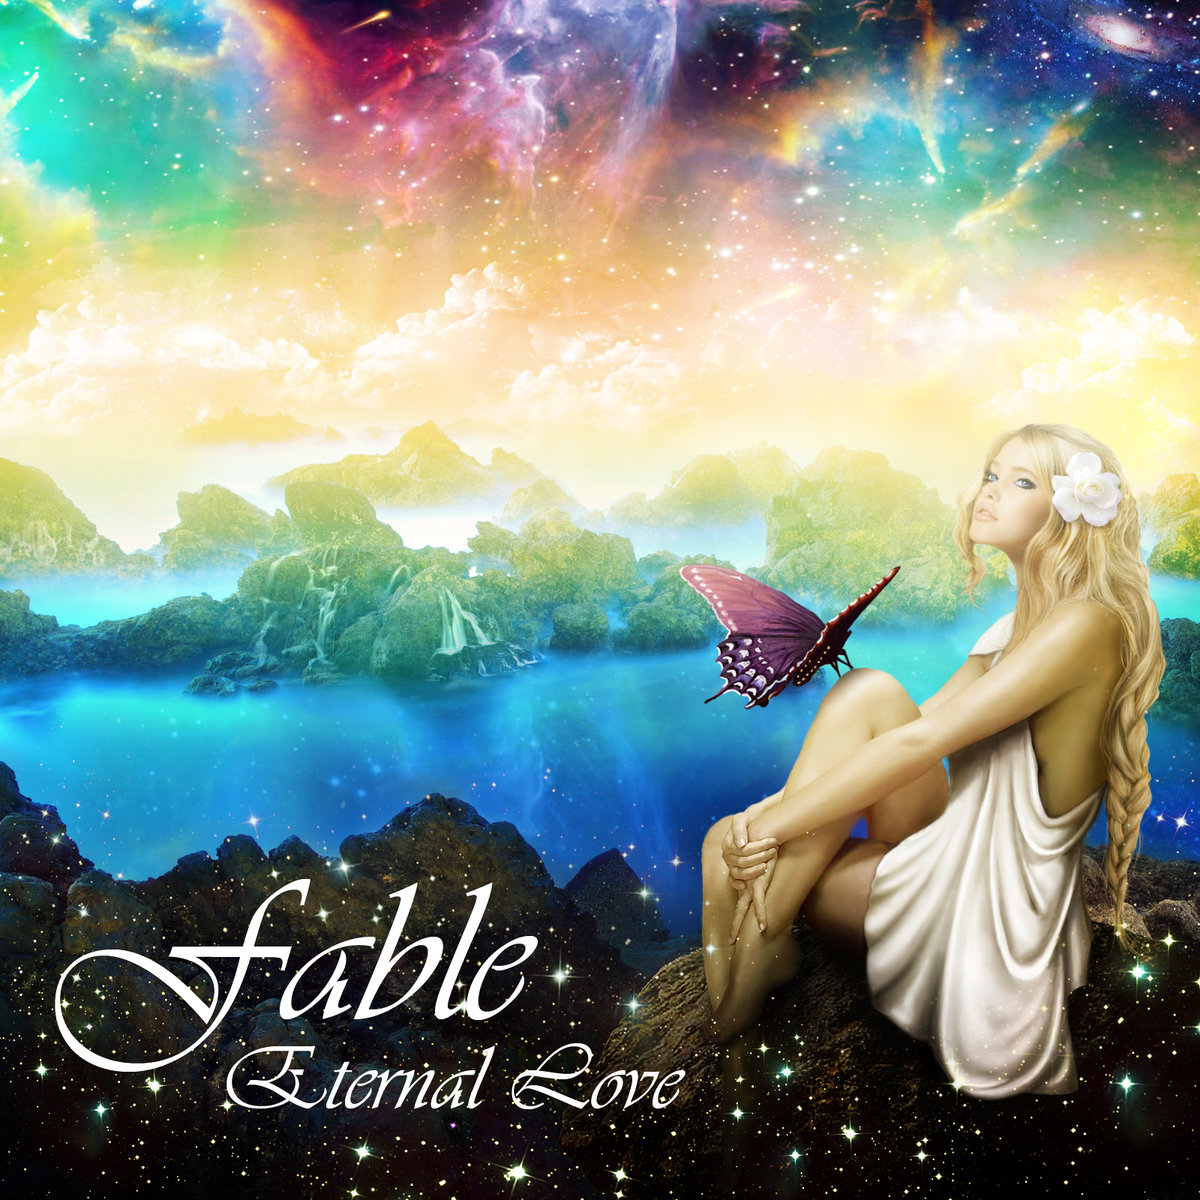 Eternal Love - Fable @ 'Fable' album (ambient, chill)